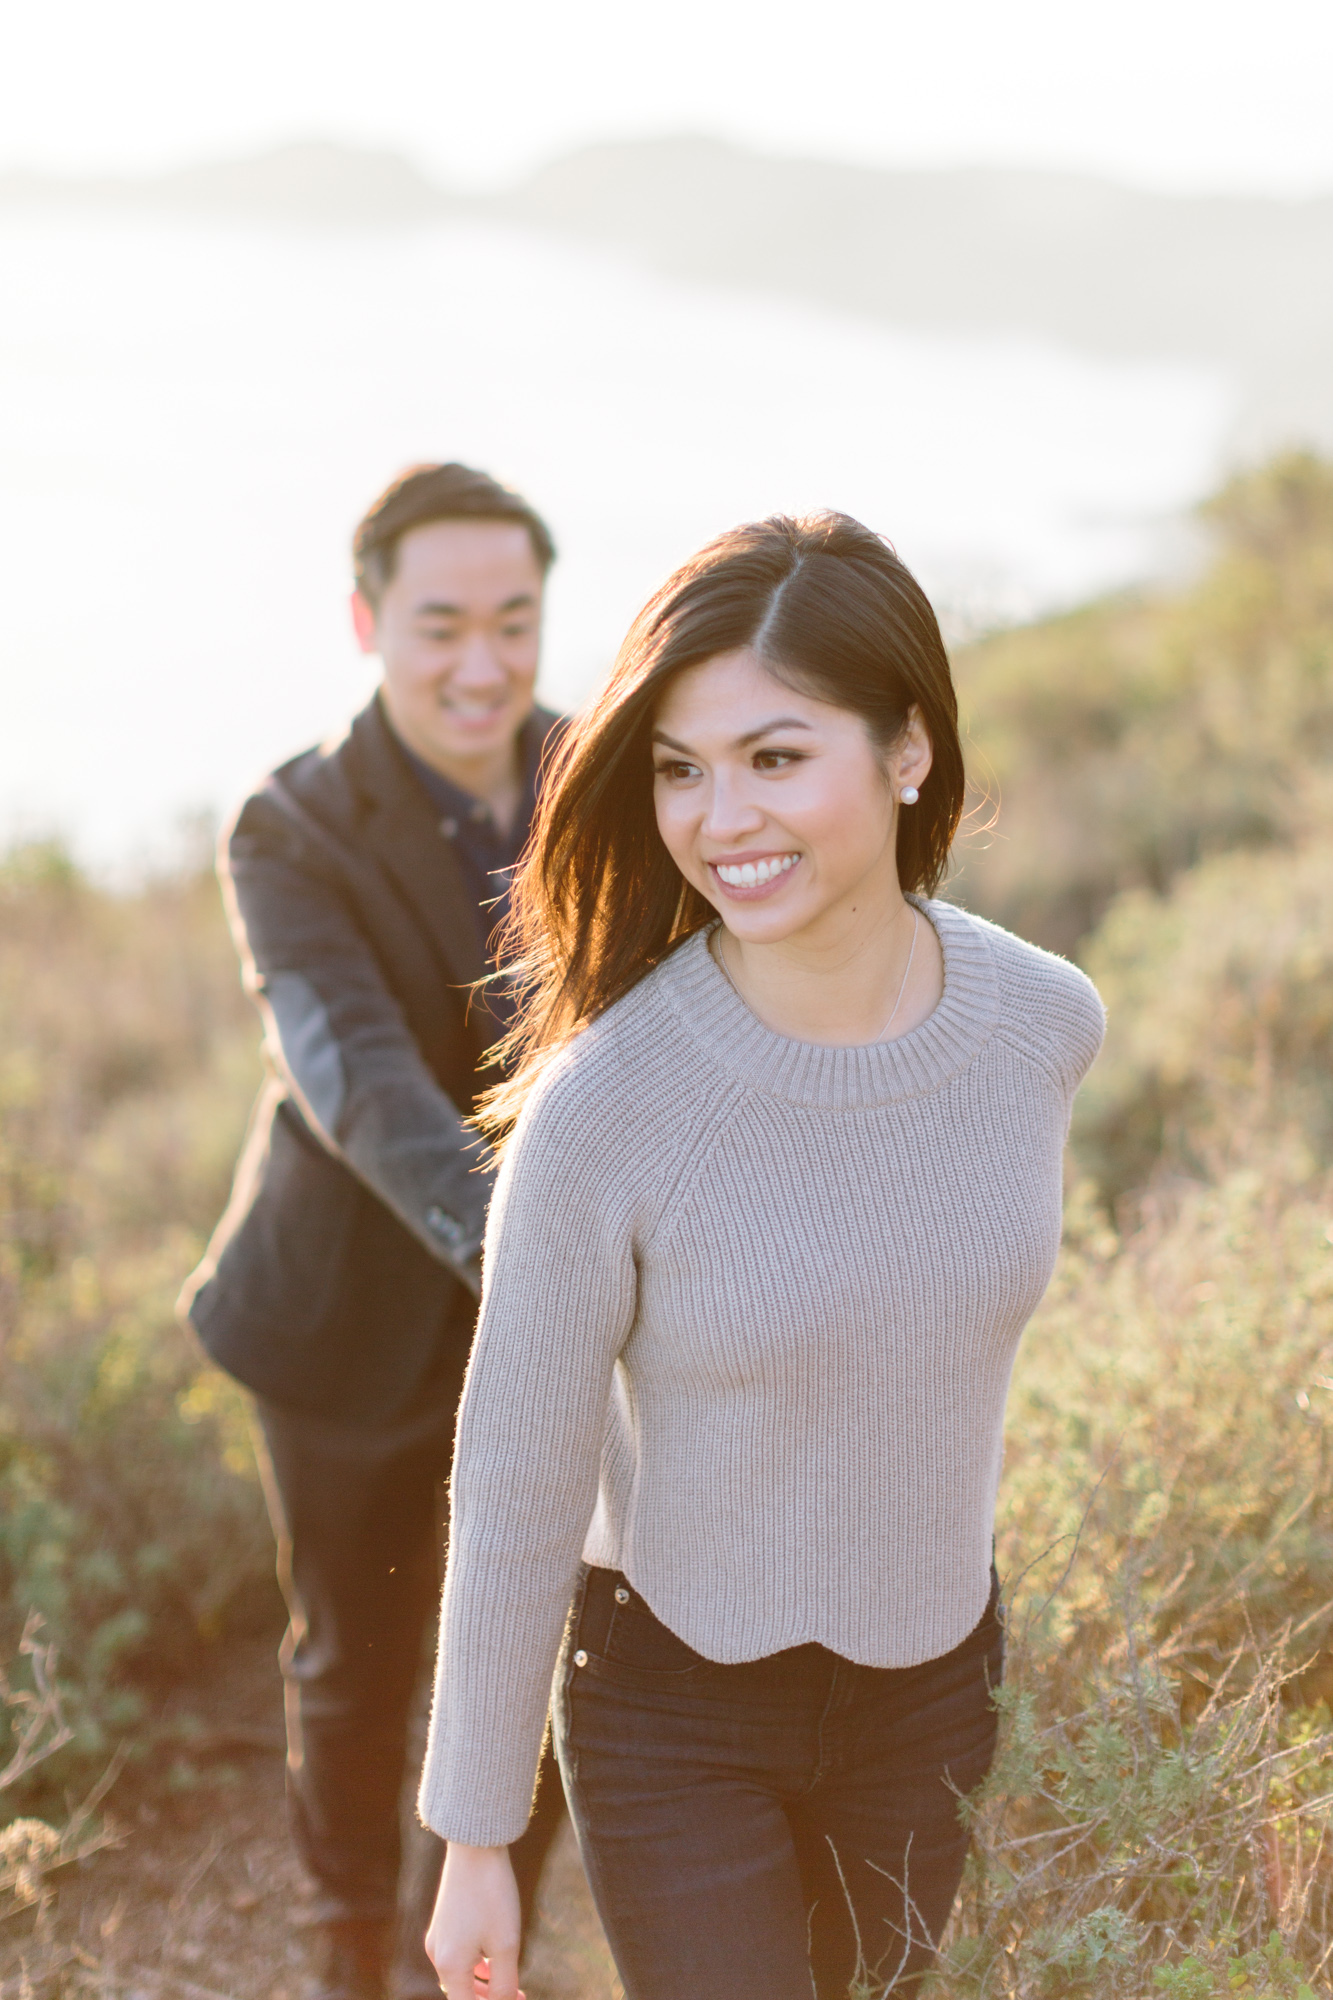 joeewong-jaal-california-san-francisco-engagement-21